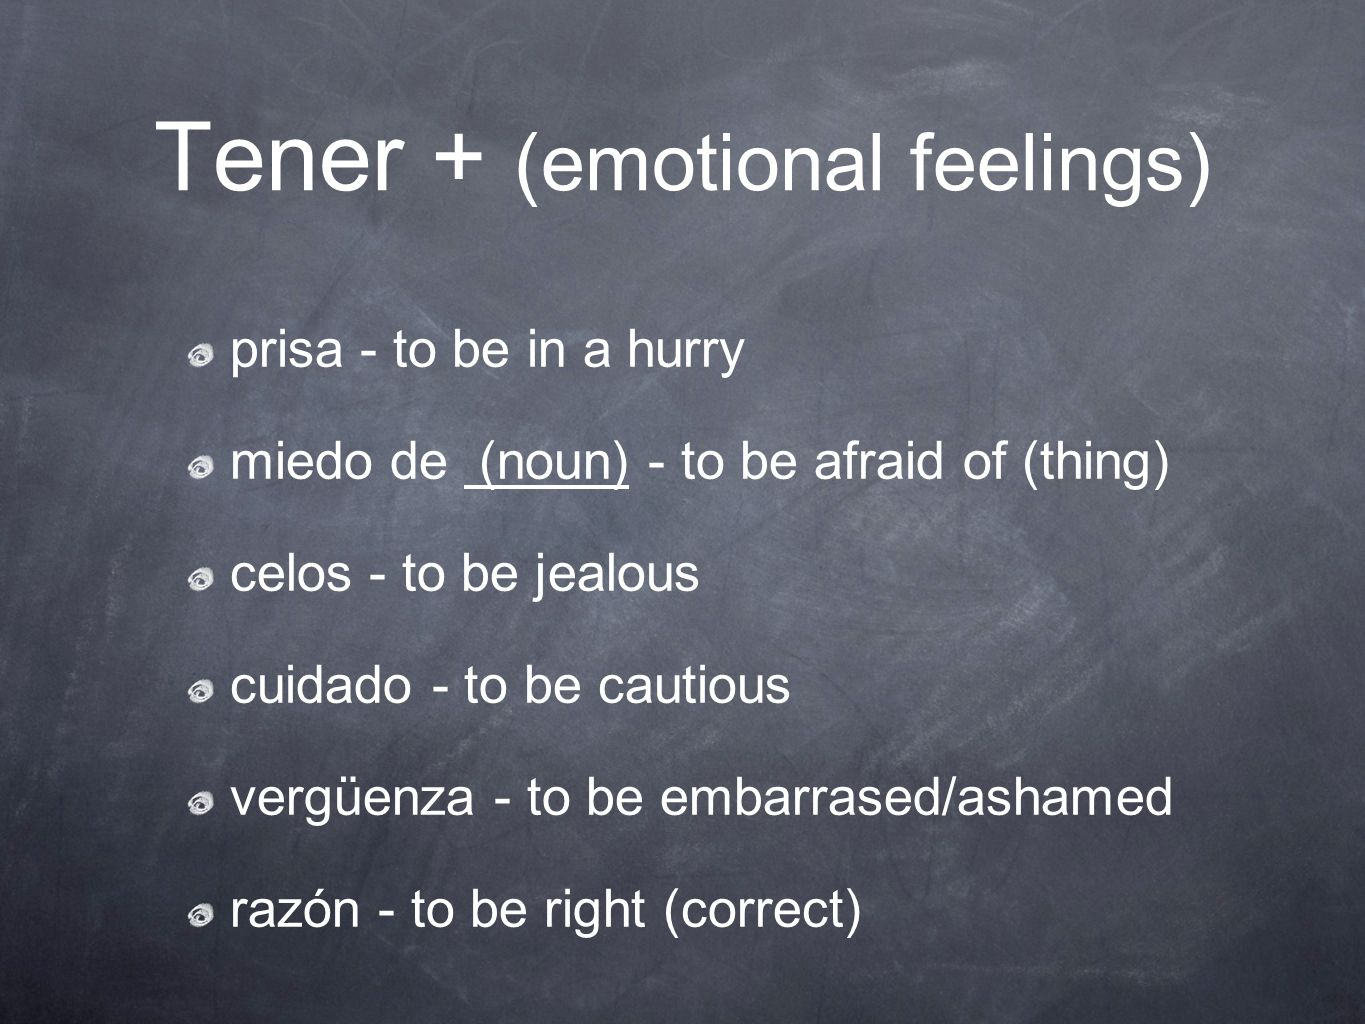 Tener + (emotional feelings)